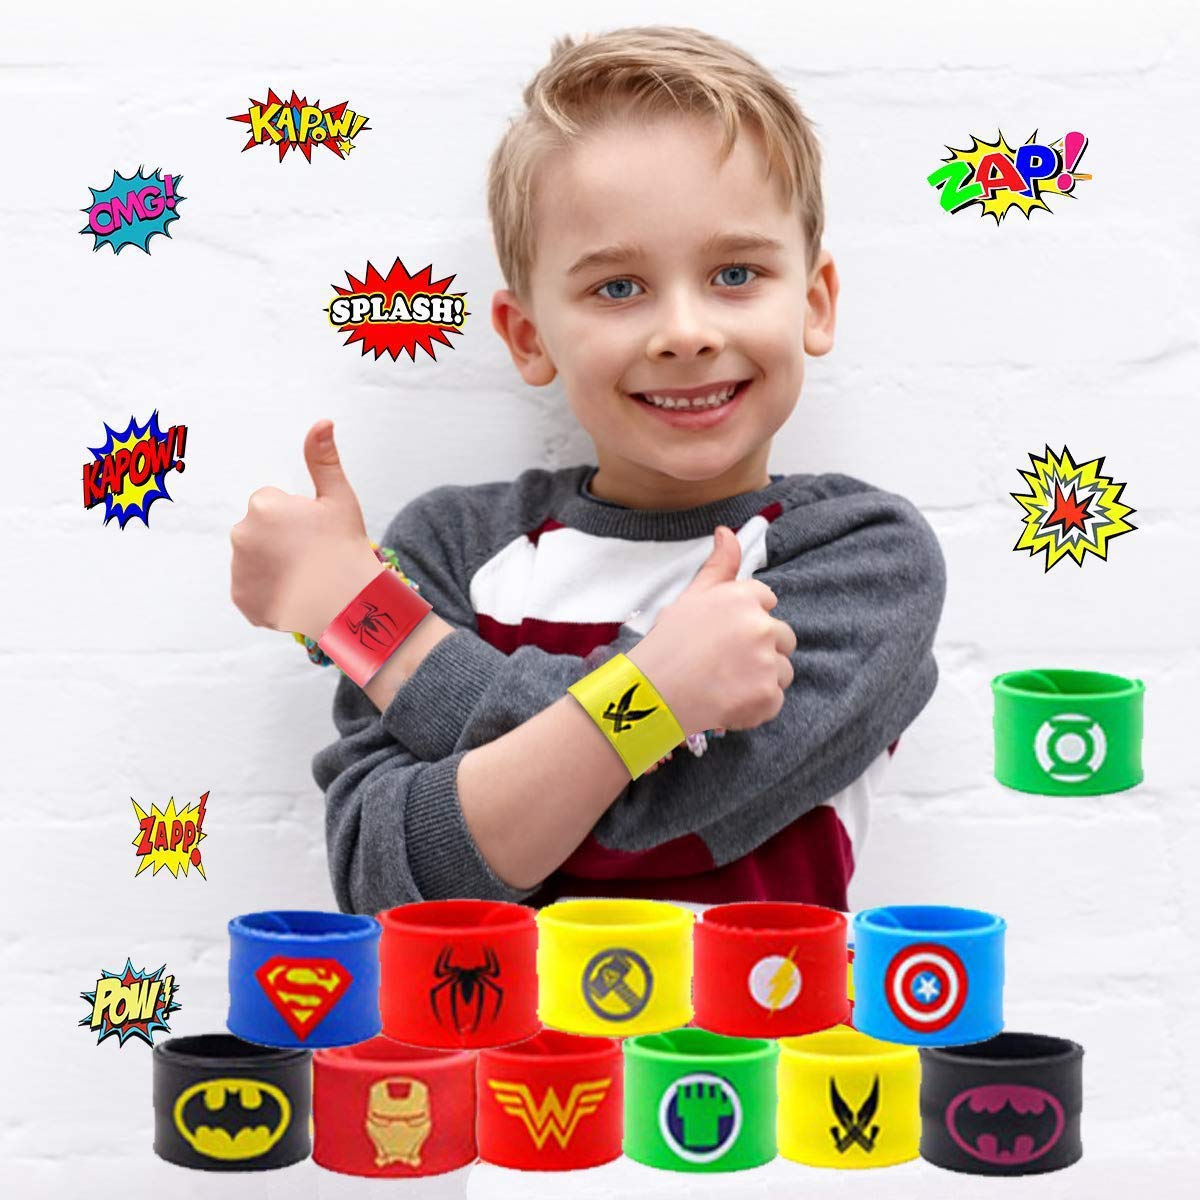 caicainiu 20 Pack Superhero Wristbands and 50 Superhero Stickers Party Supplies Childrens Bracelets with Boys Adult Birthday Kids Superhero Party Like Toys